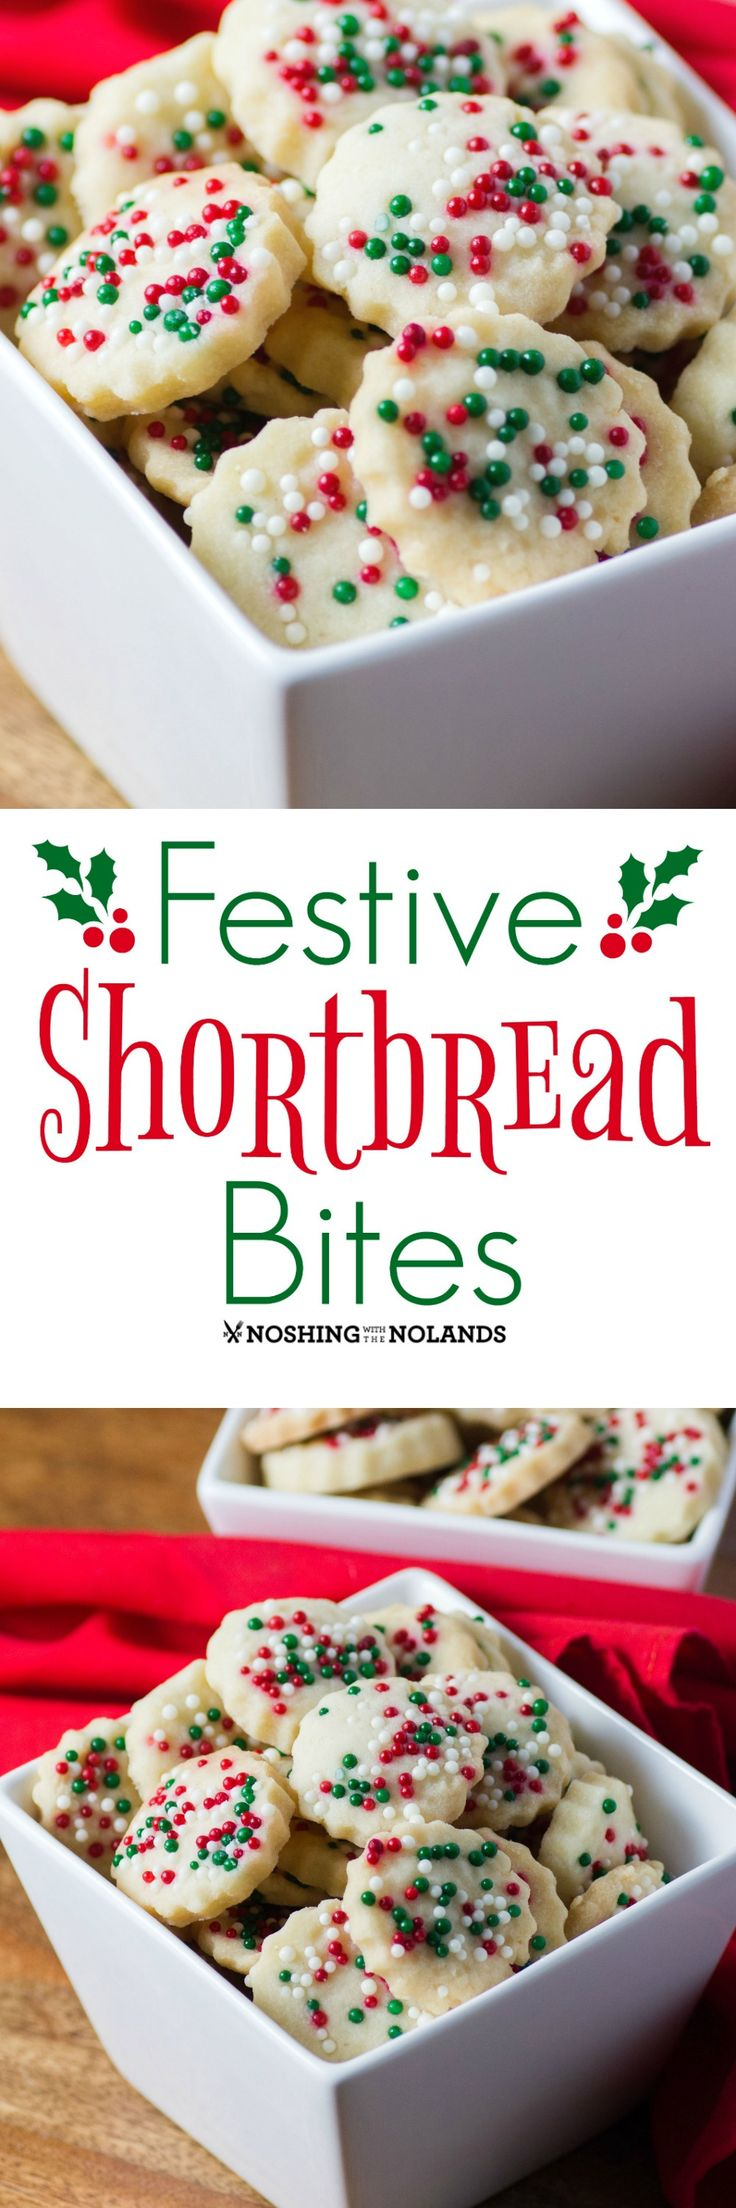 One that you can go back to and have another and another and still not add up to one big cookie. That is why I love these Festive Shortbread Bites.